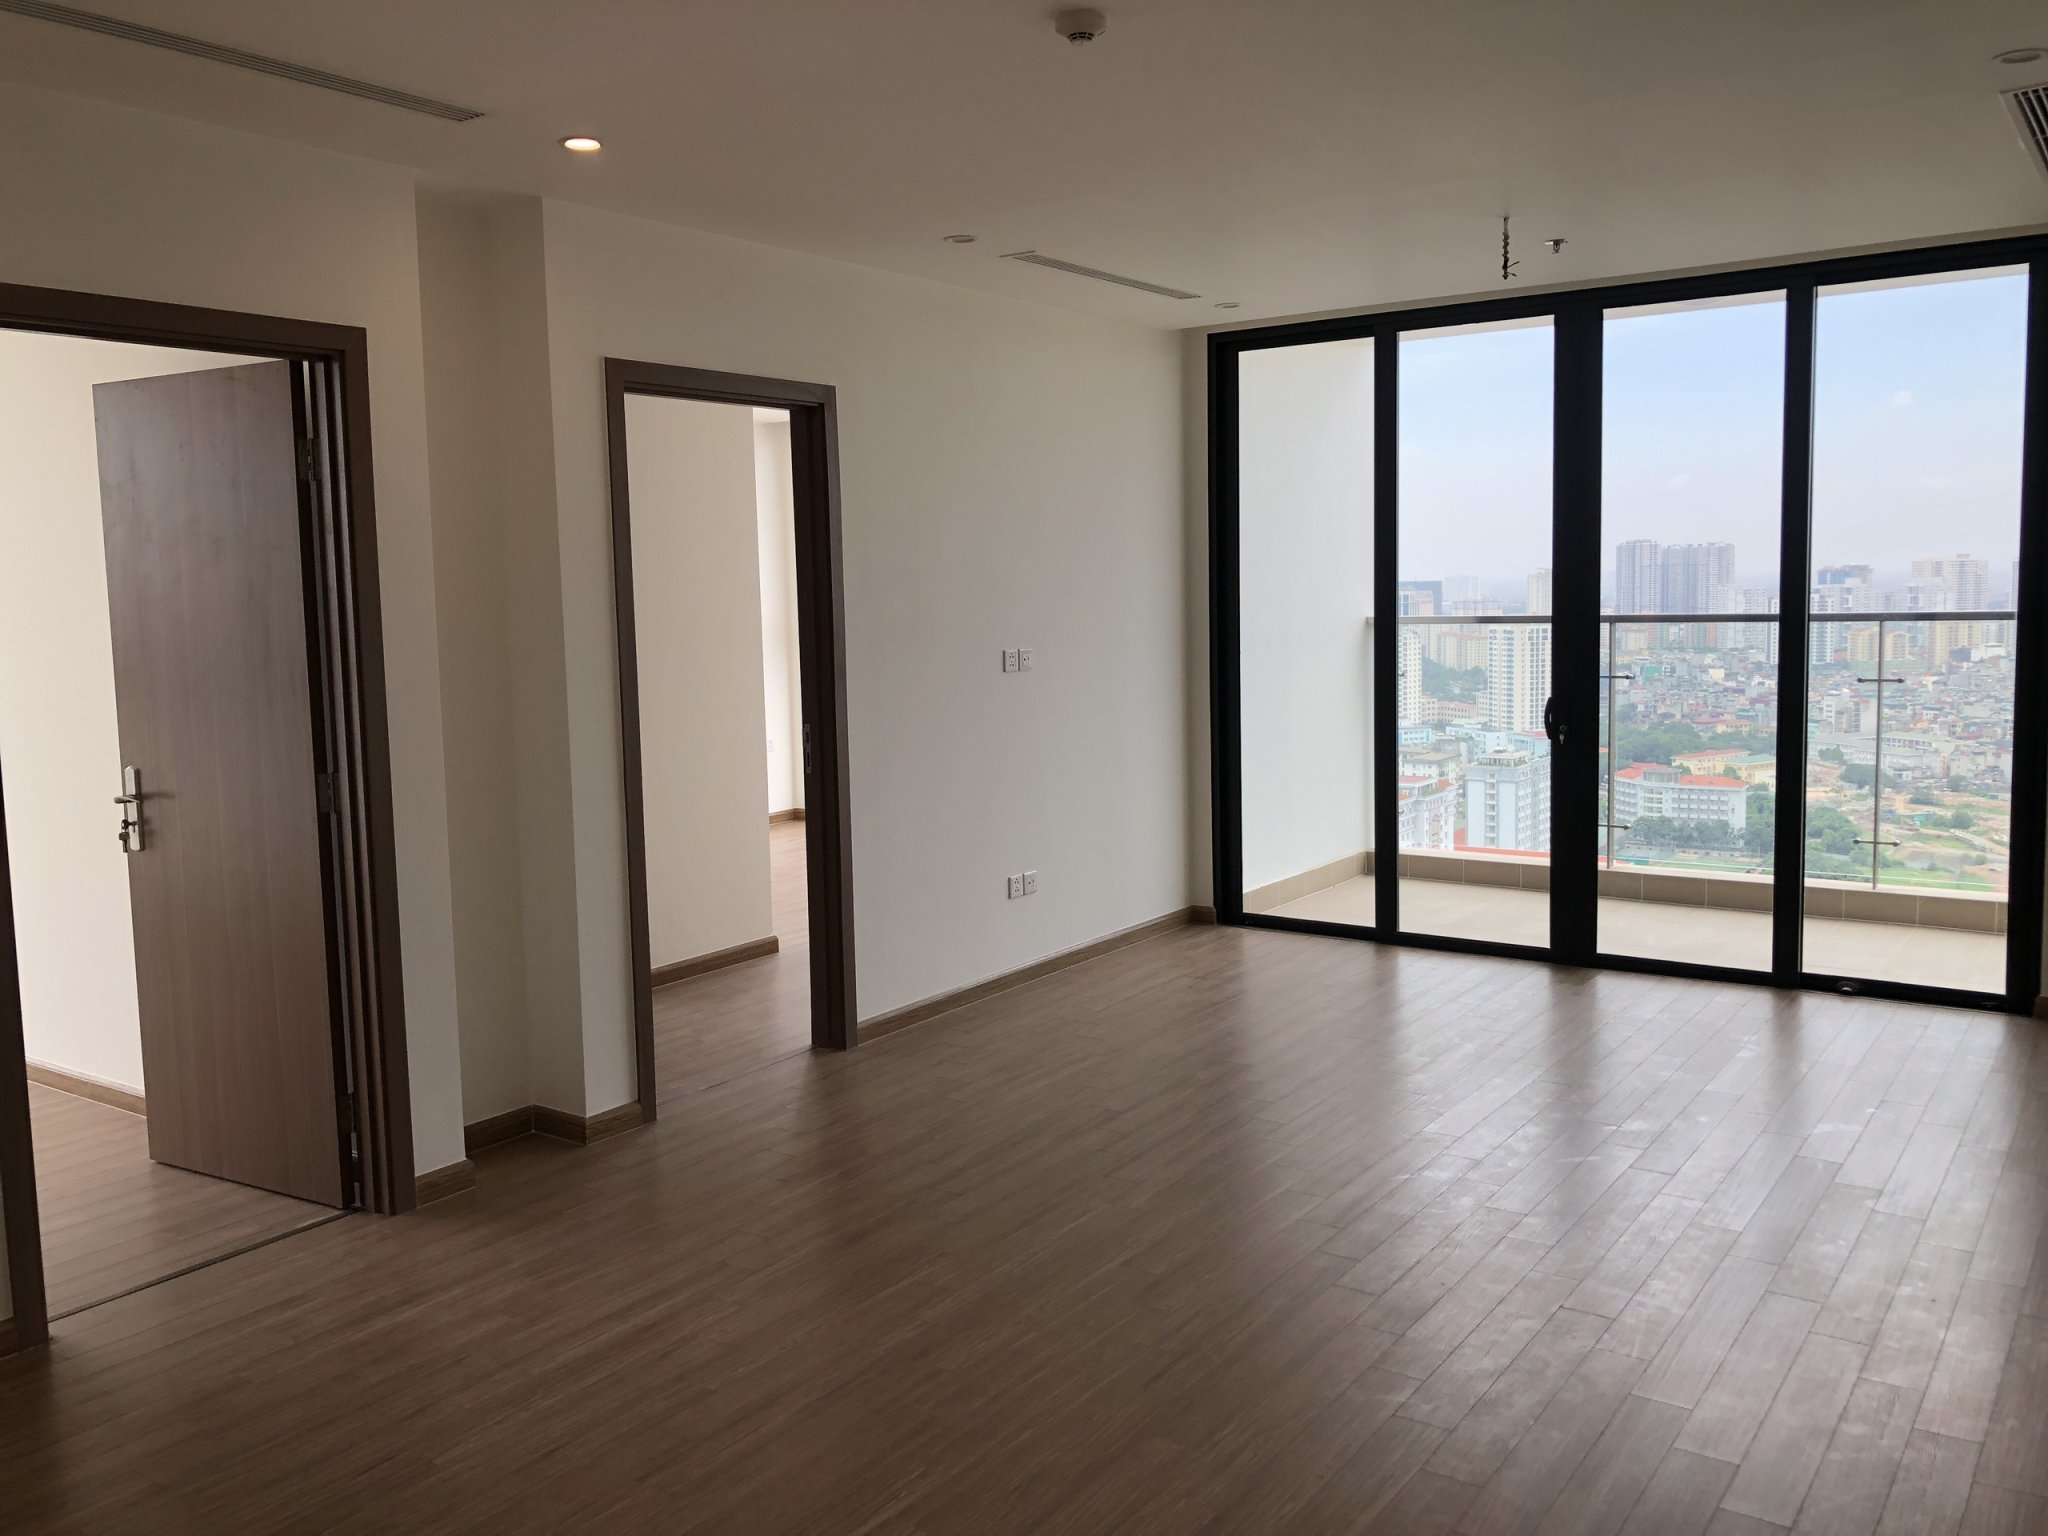 Vinhomes Skylake Pham Hung Apartment for rent